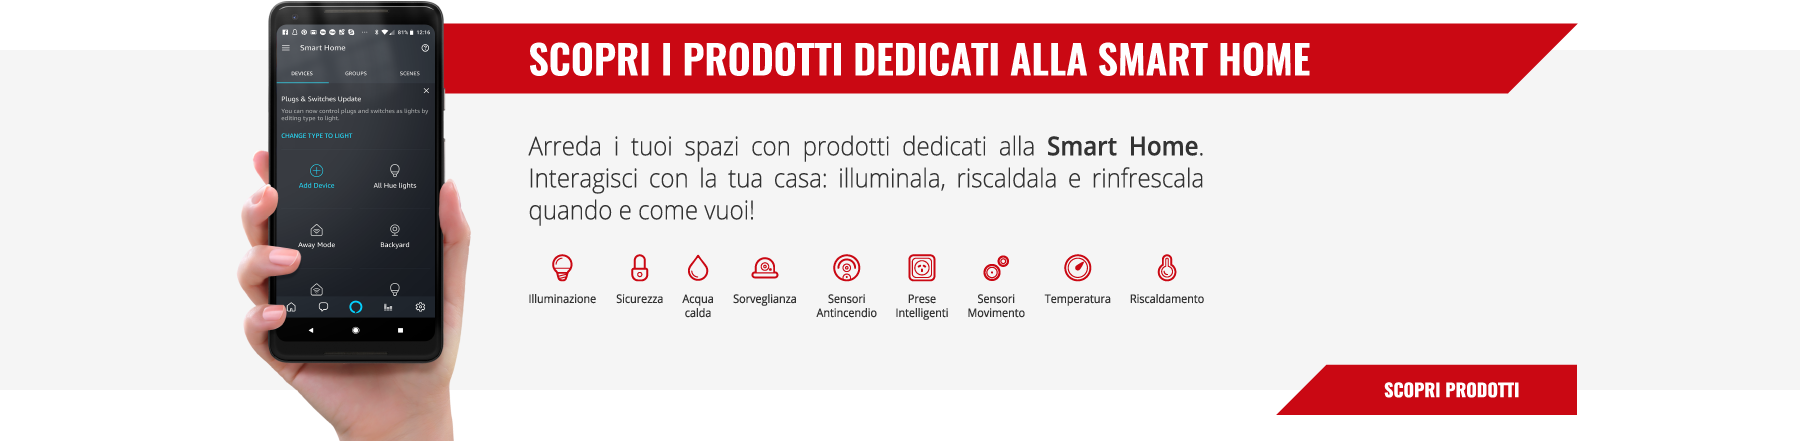 Prodotti Smart Home